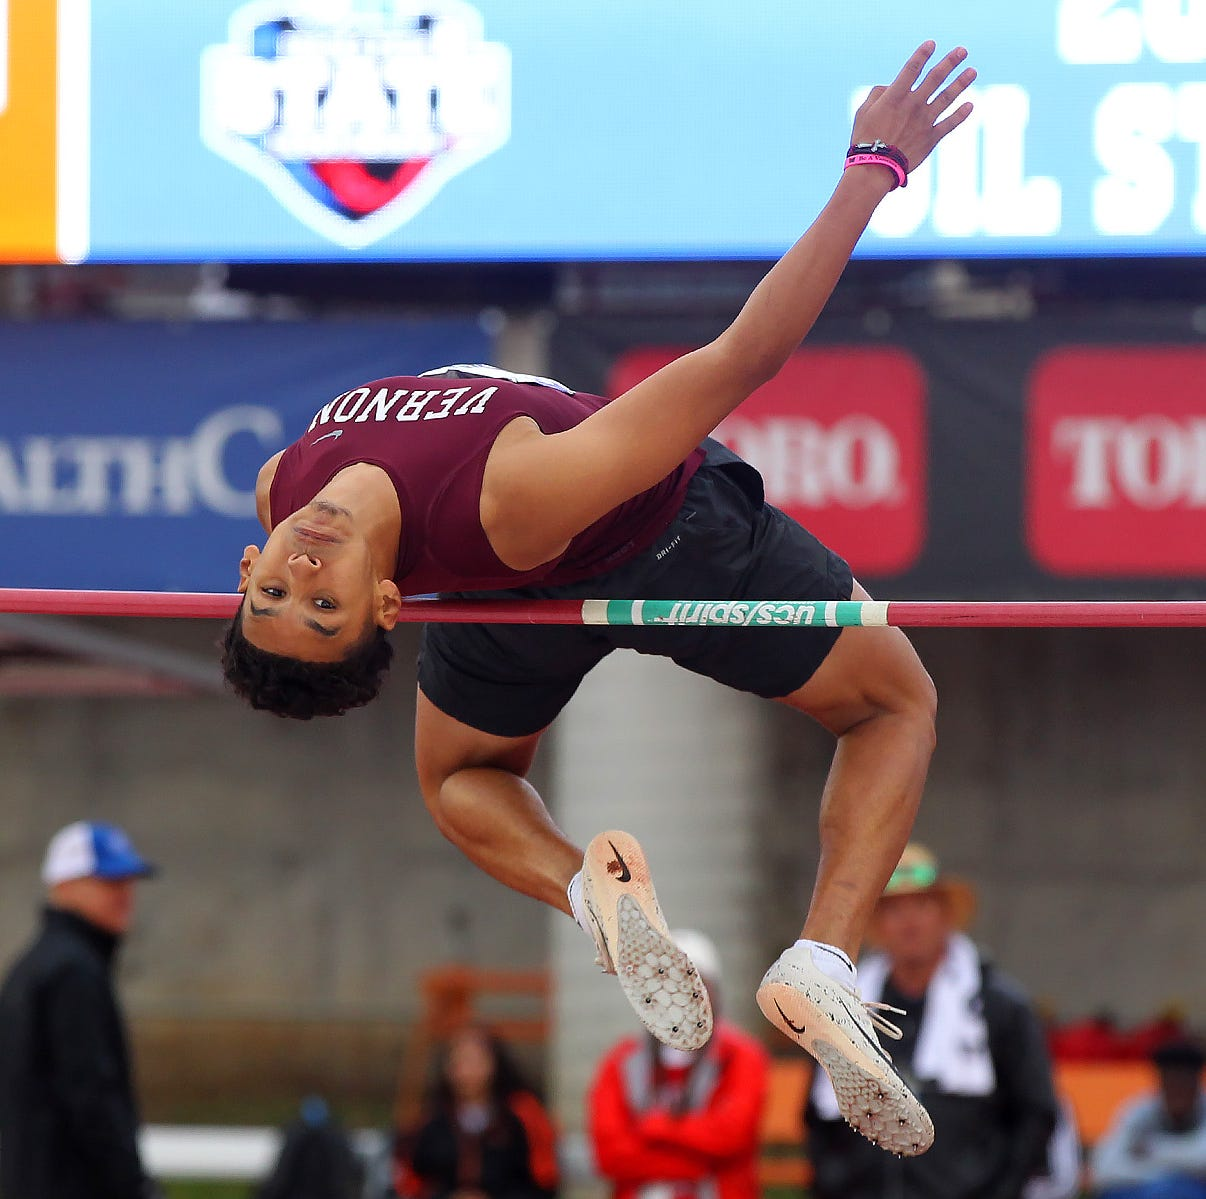 UIL track: Vernon's Garza grabs silver medal in gripping 4A high jump; Warren nabs bronze